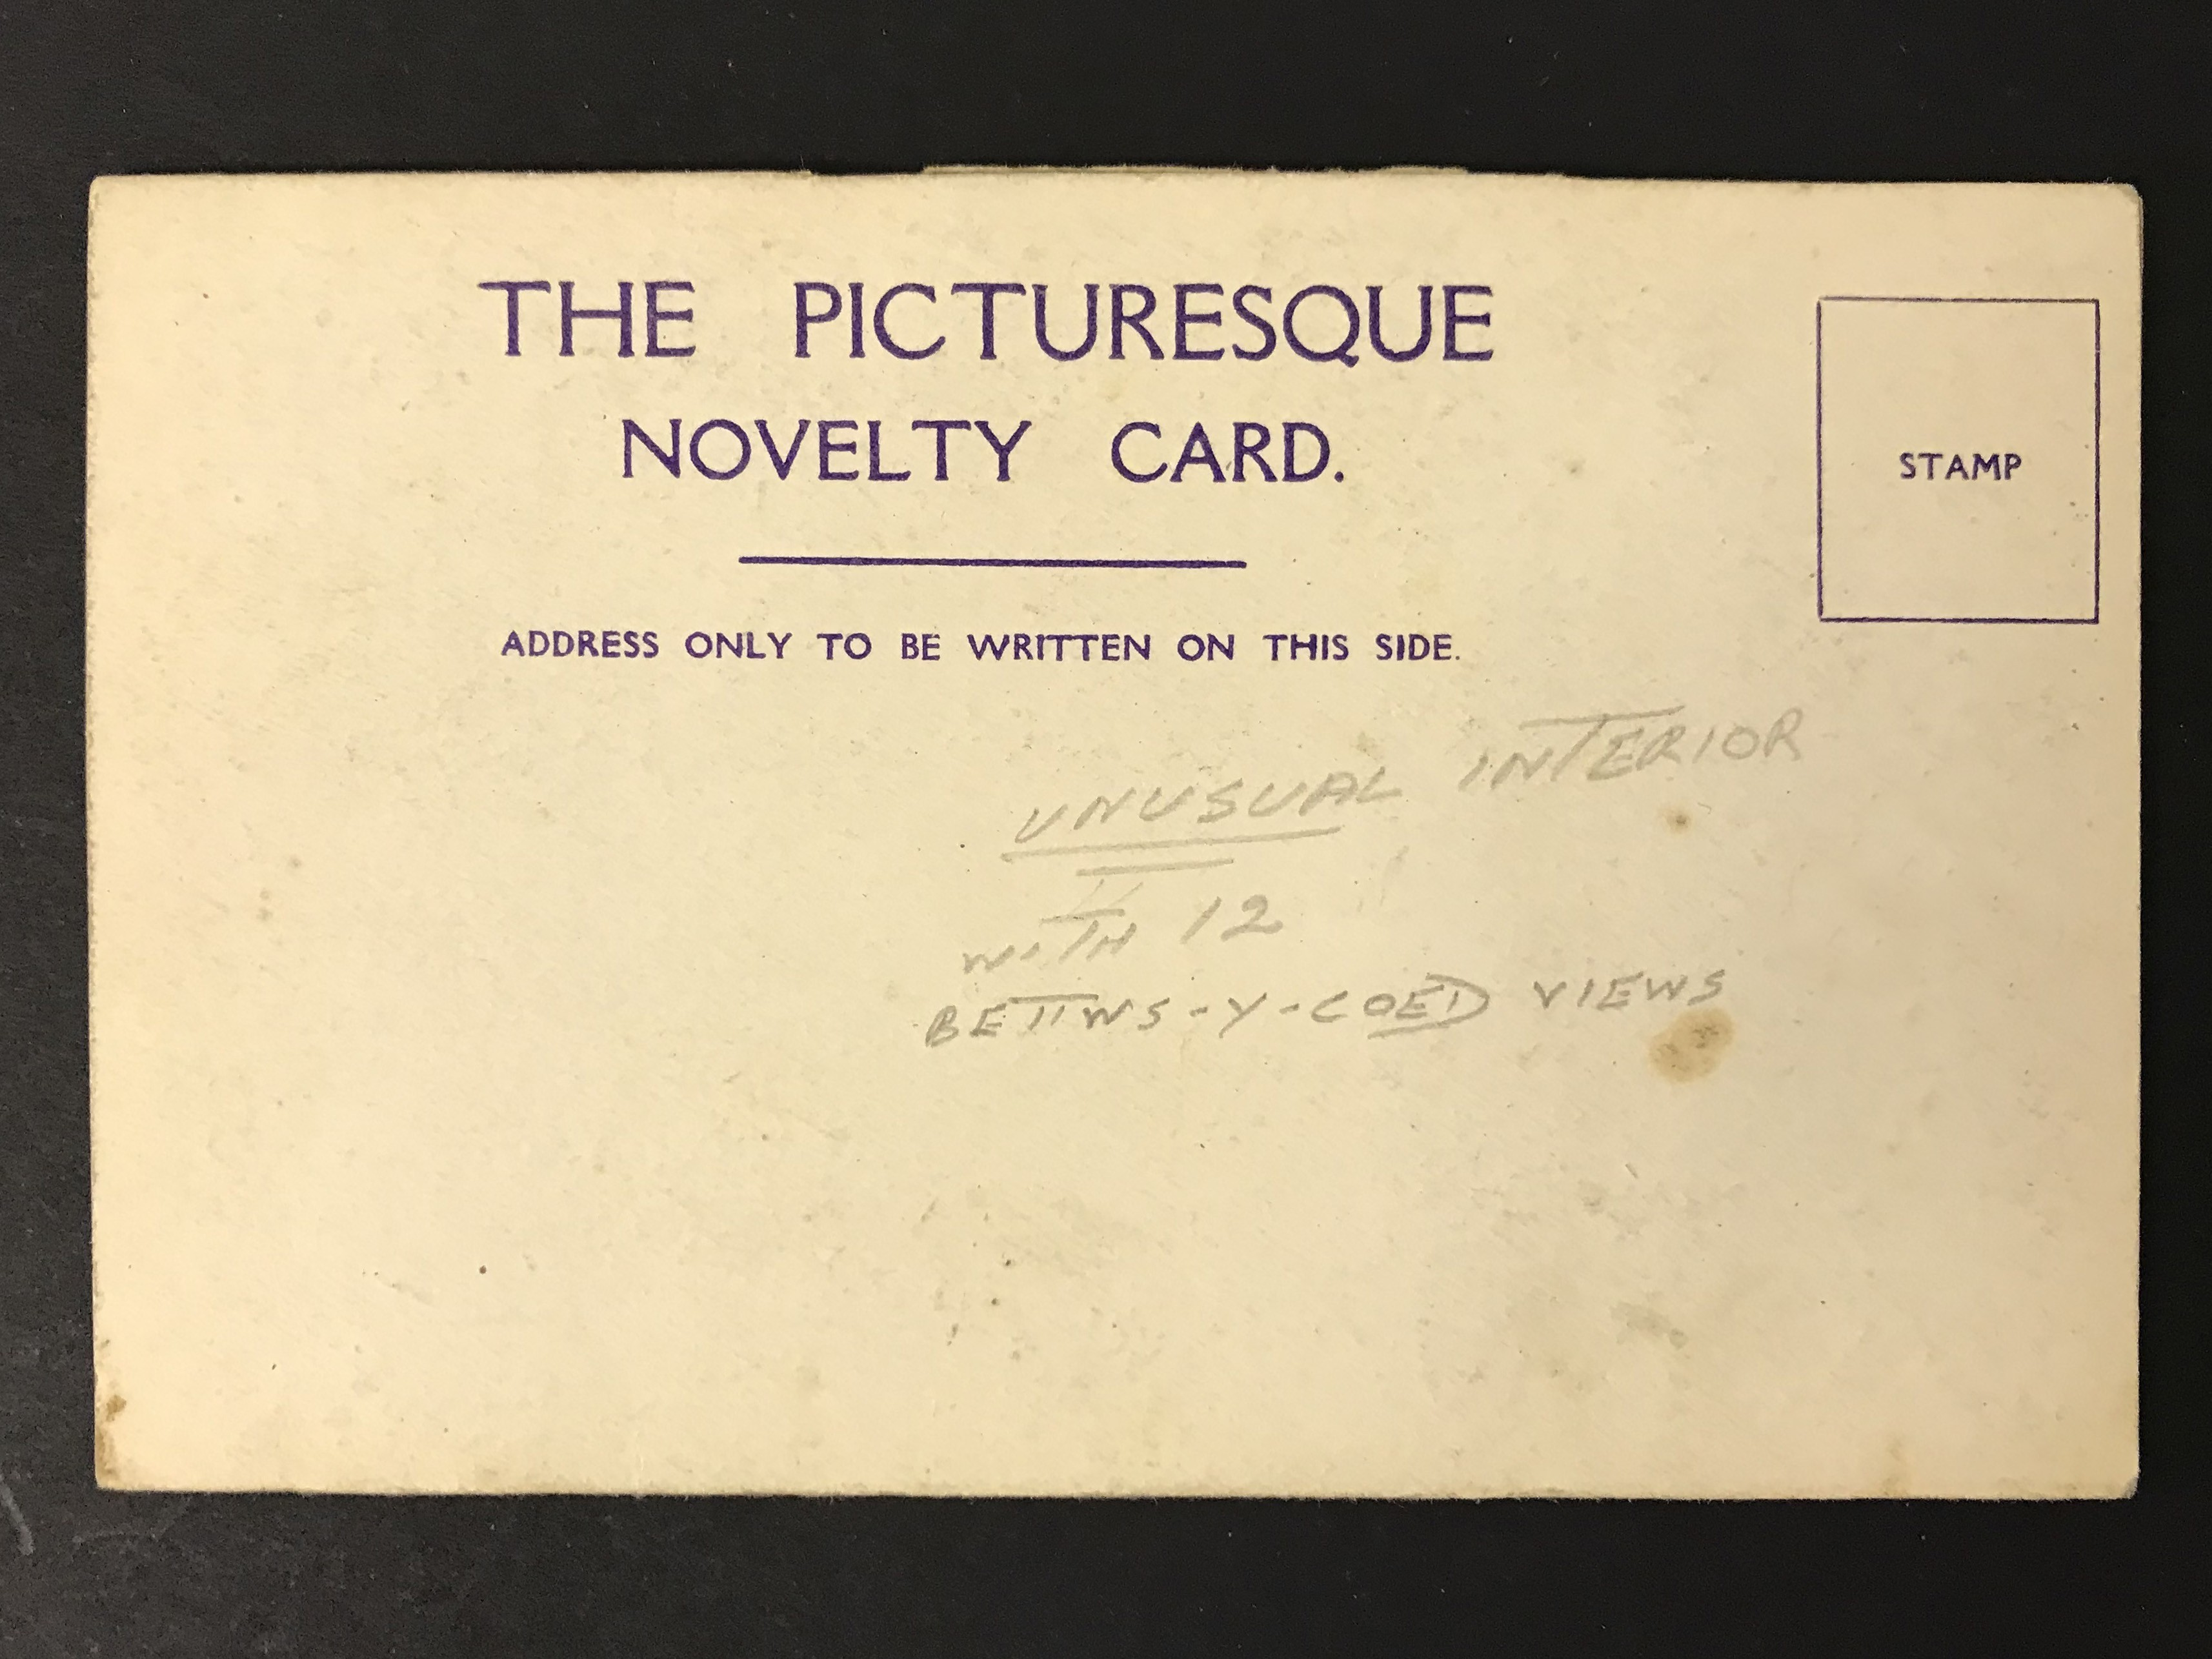 Lot 33 - THE PICTURESQUE NOVELTY CARD IN ART NOUVEAU STYLE WITH TWELVE VIEWS